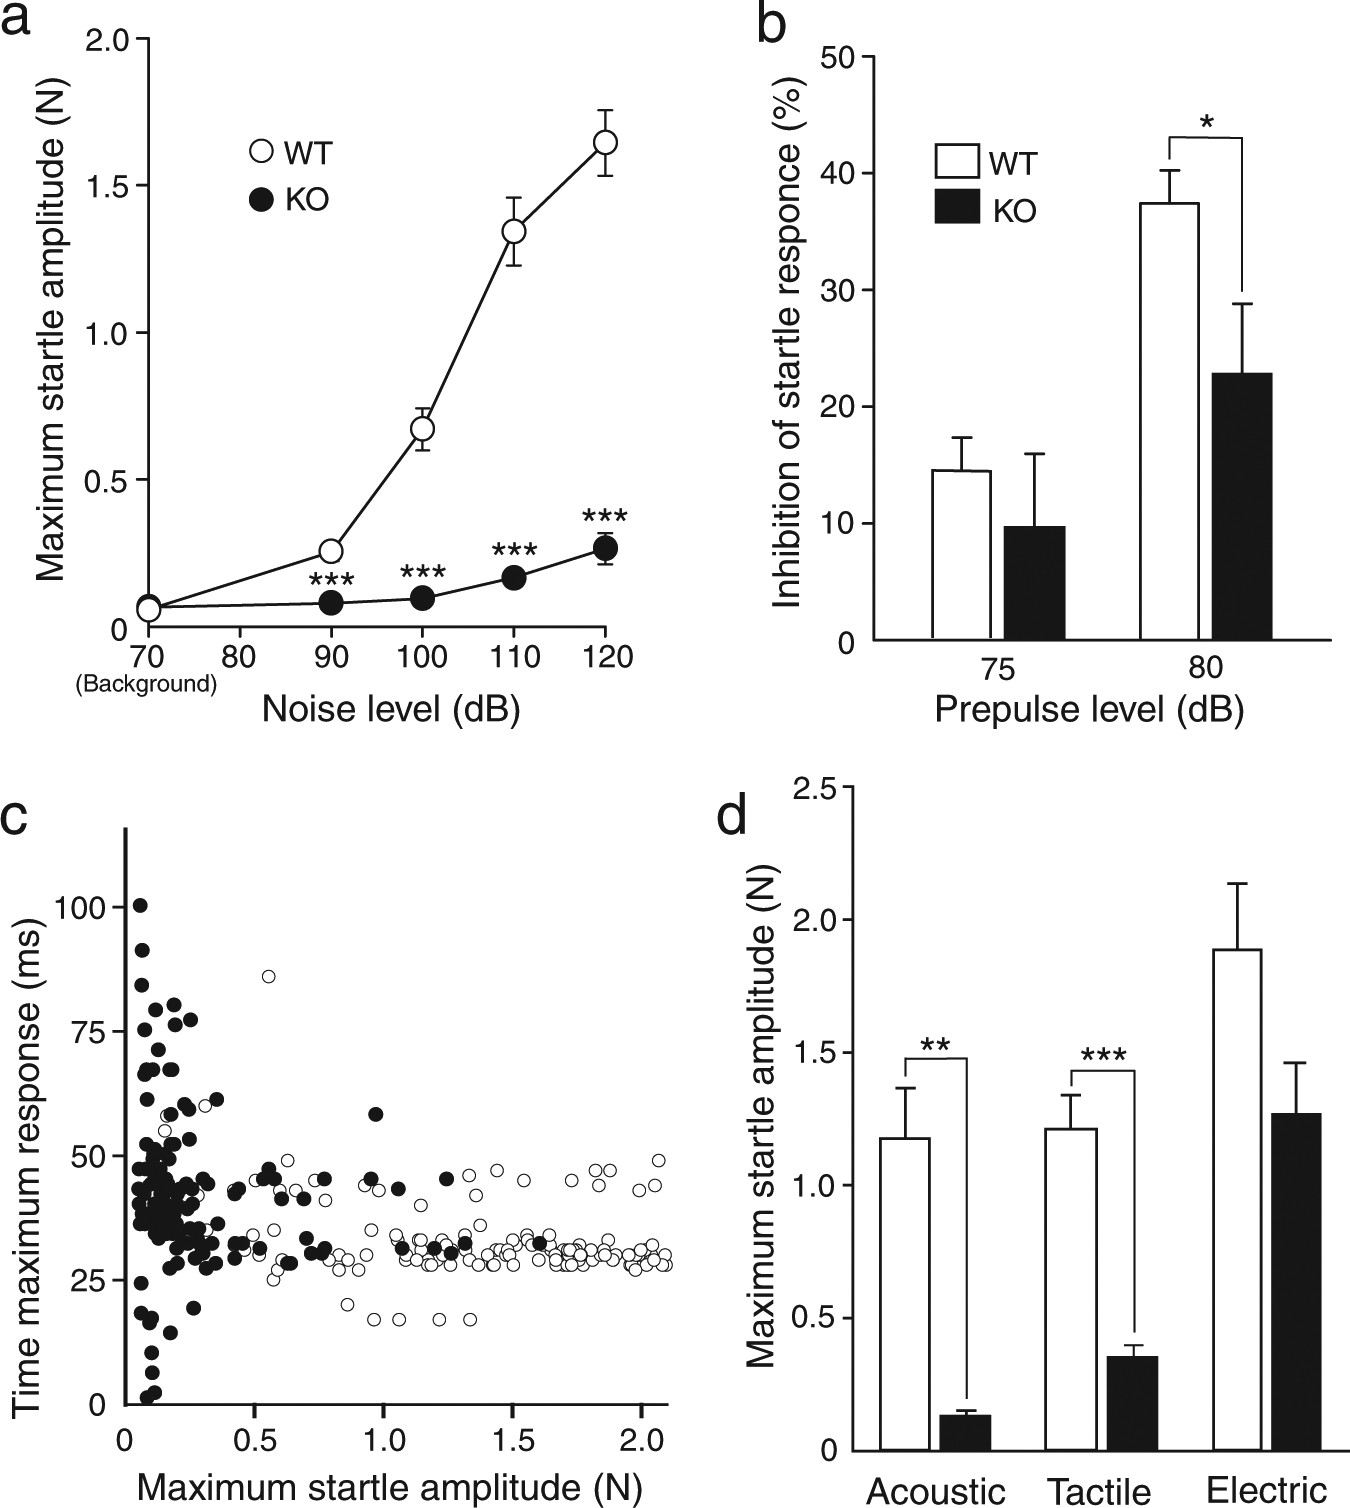 The Adhesion Molecule Cadherin 11 Is Essential For Acquisition Of 5e Kohler Generator Wiring Diagram Normal Hearing Ability Through Middle Ear Development In Mouse Laboratory